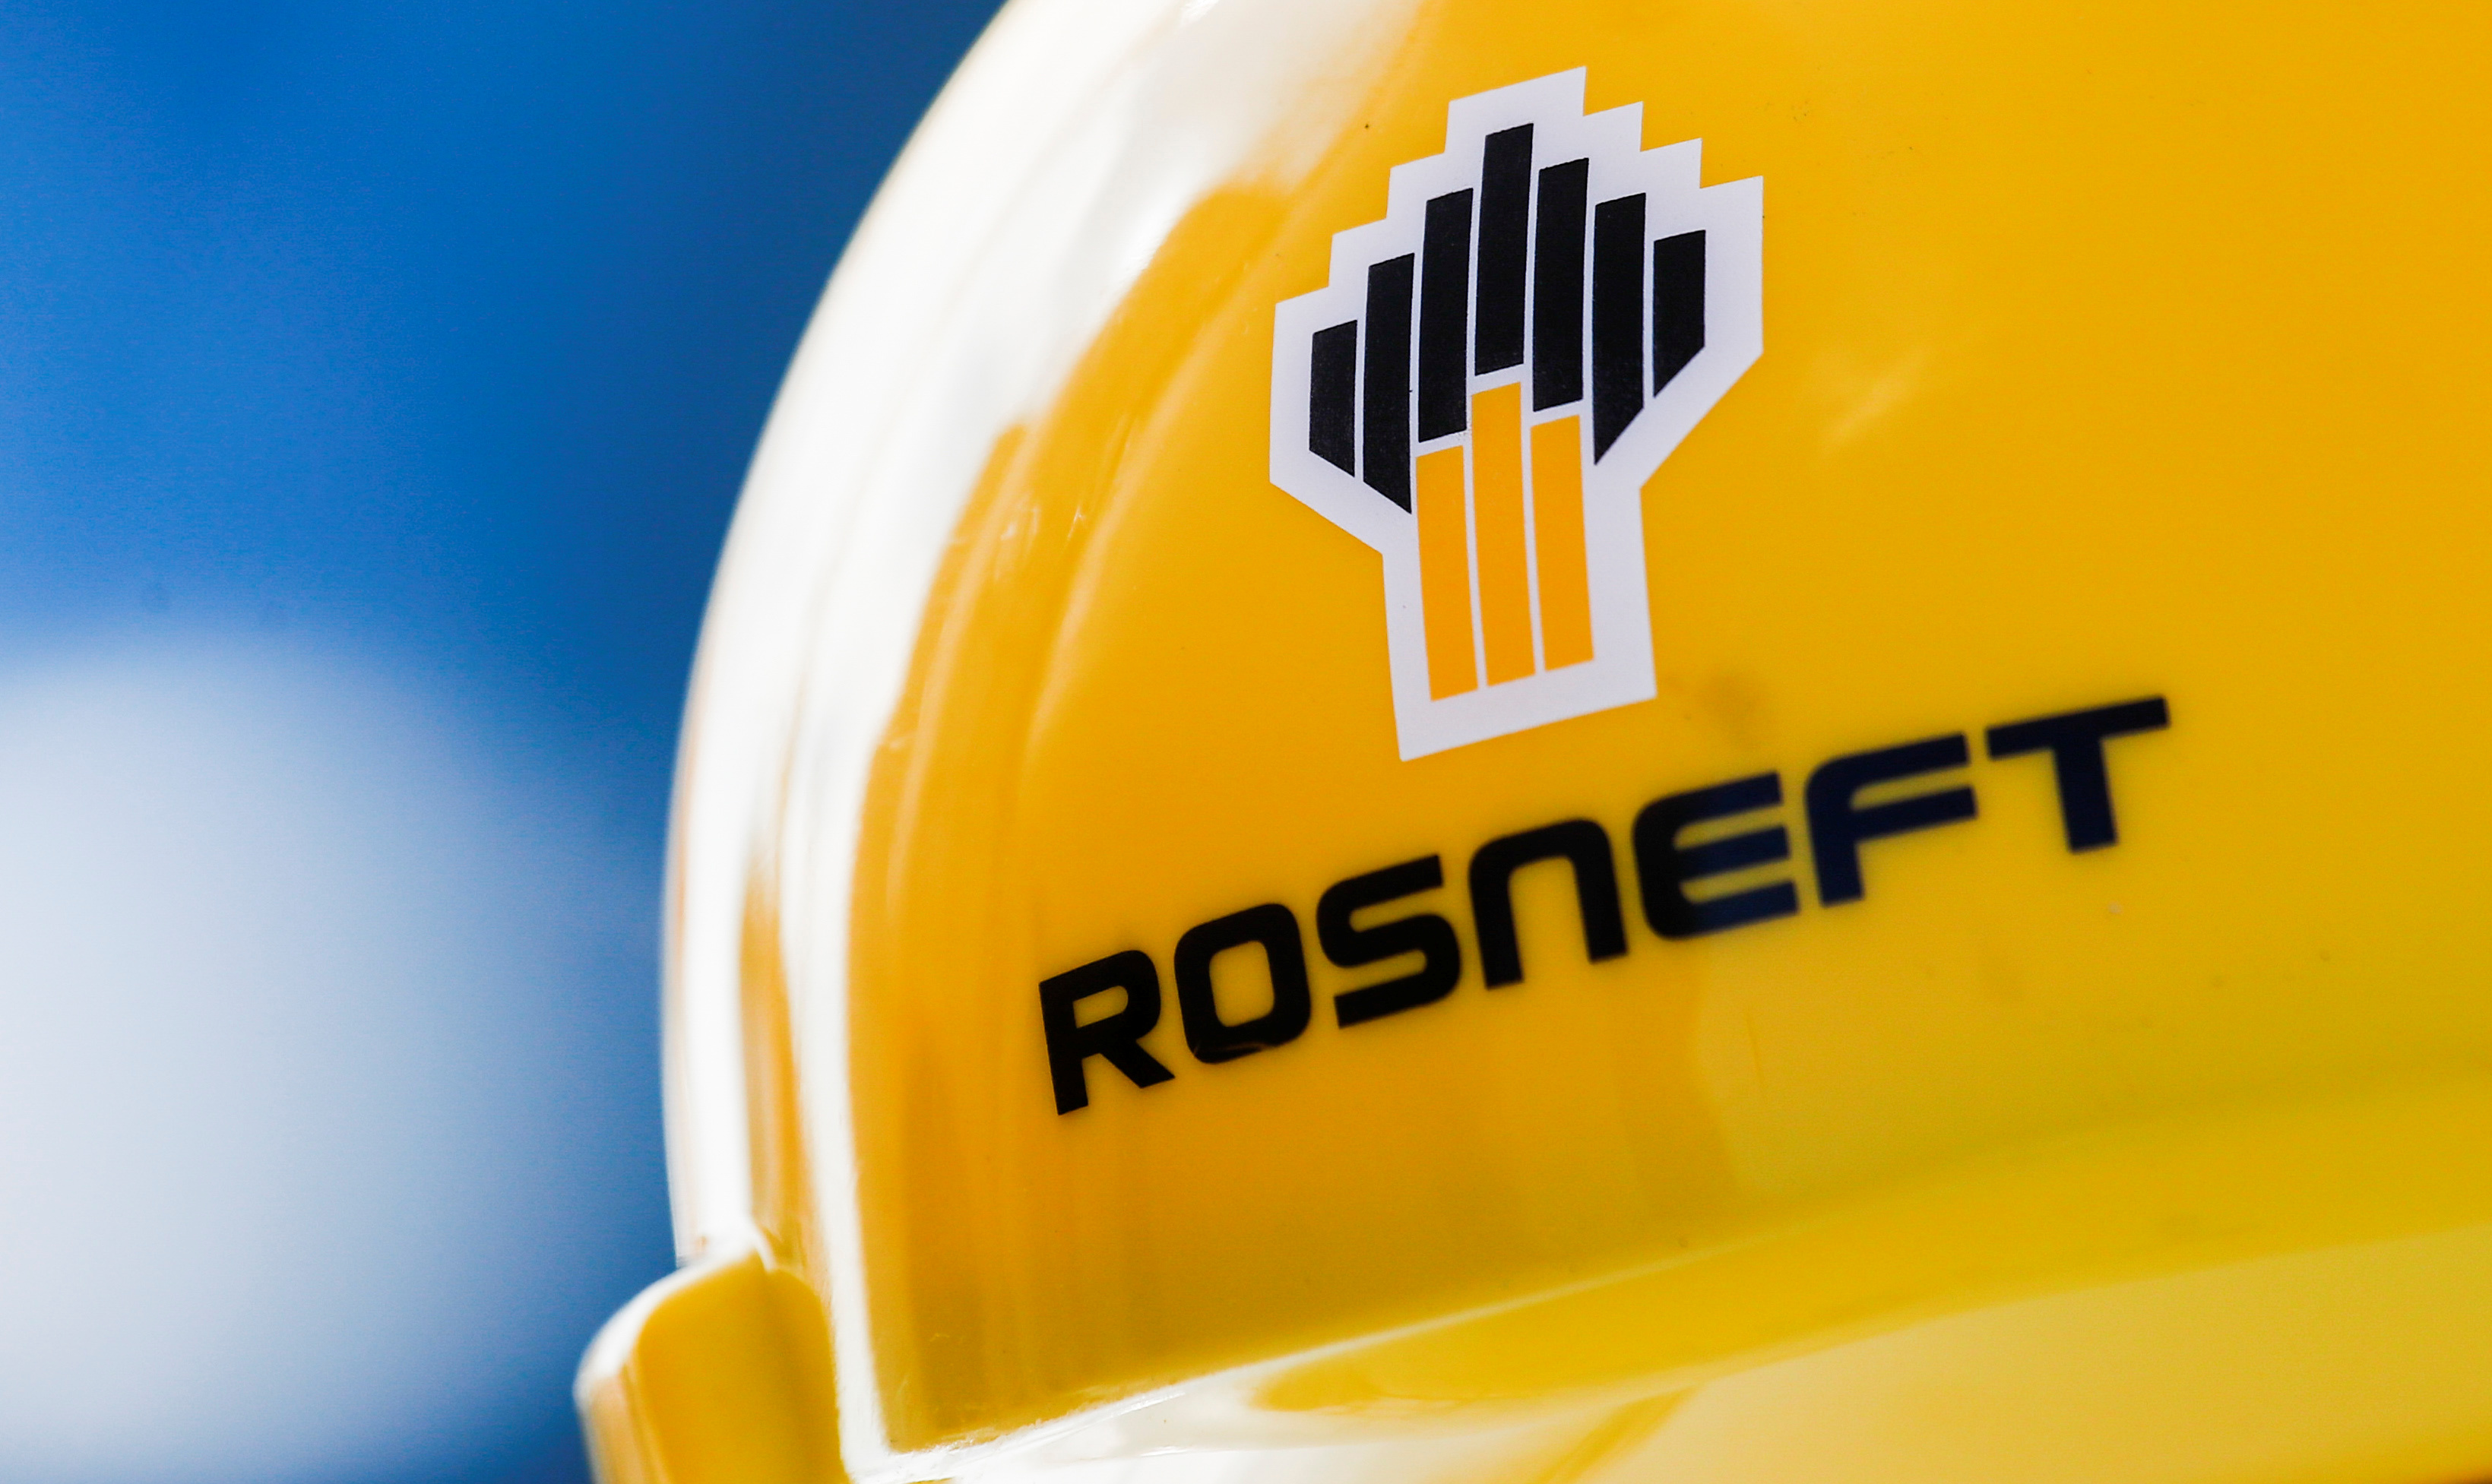 The Rosneft logo is pictured on a safety helmet in Vung Tau, Vietnam April 27, 2018.  REUTERS/Maxim Shemetov